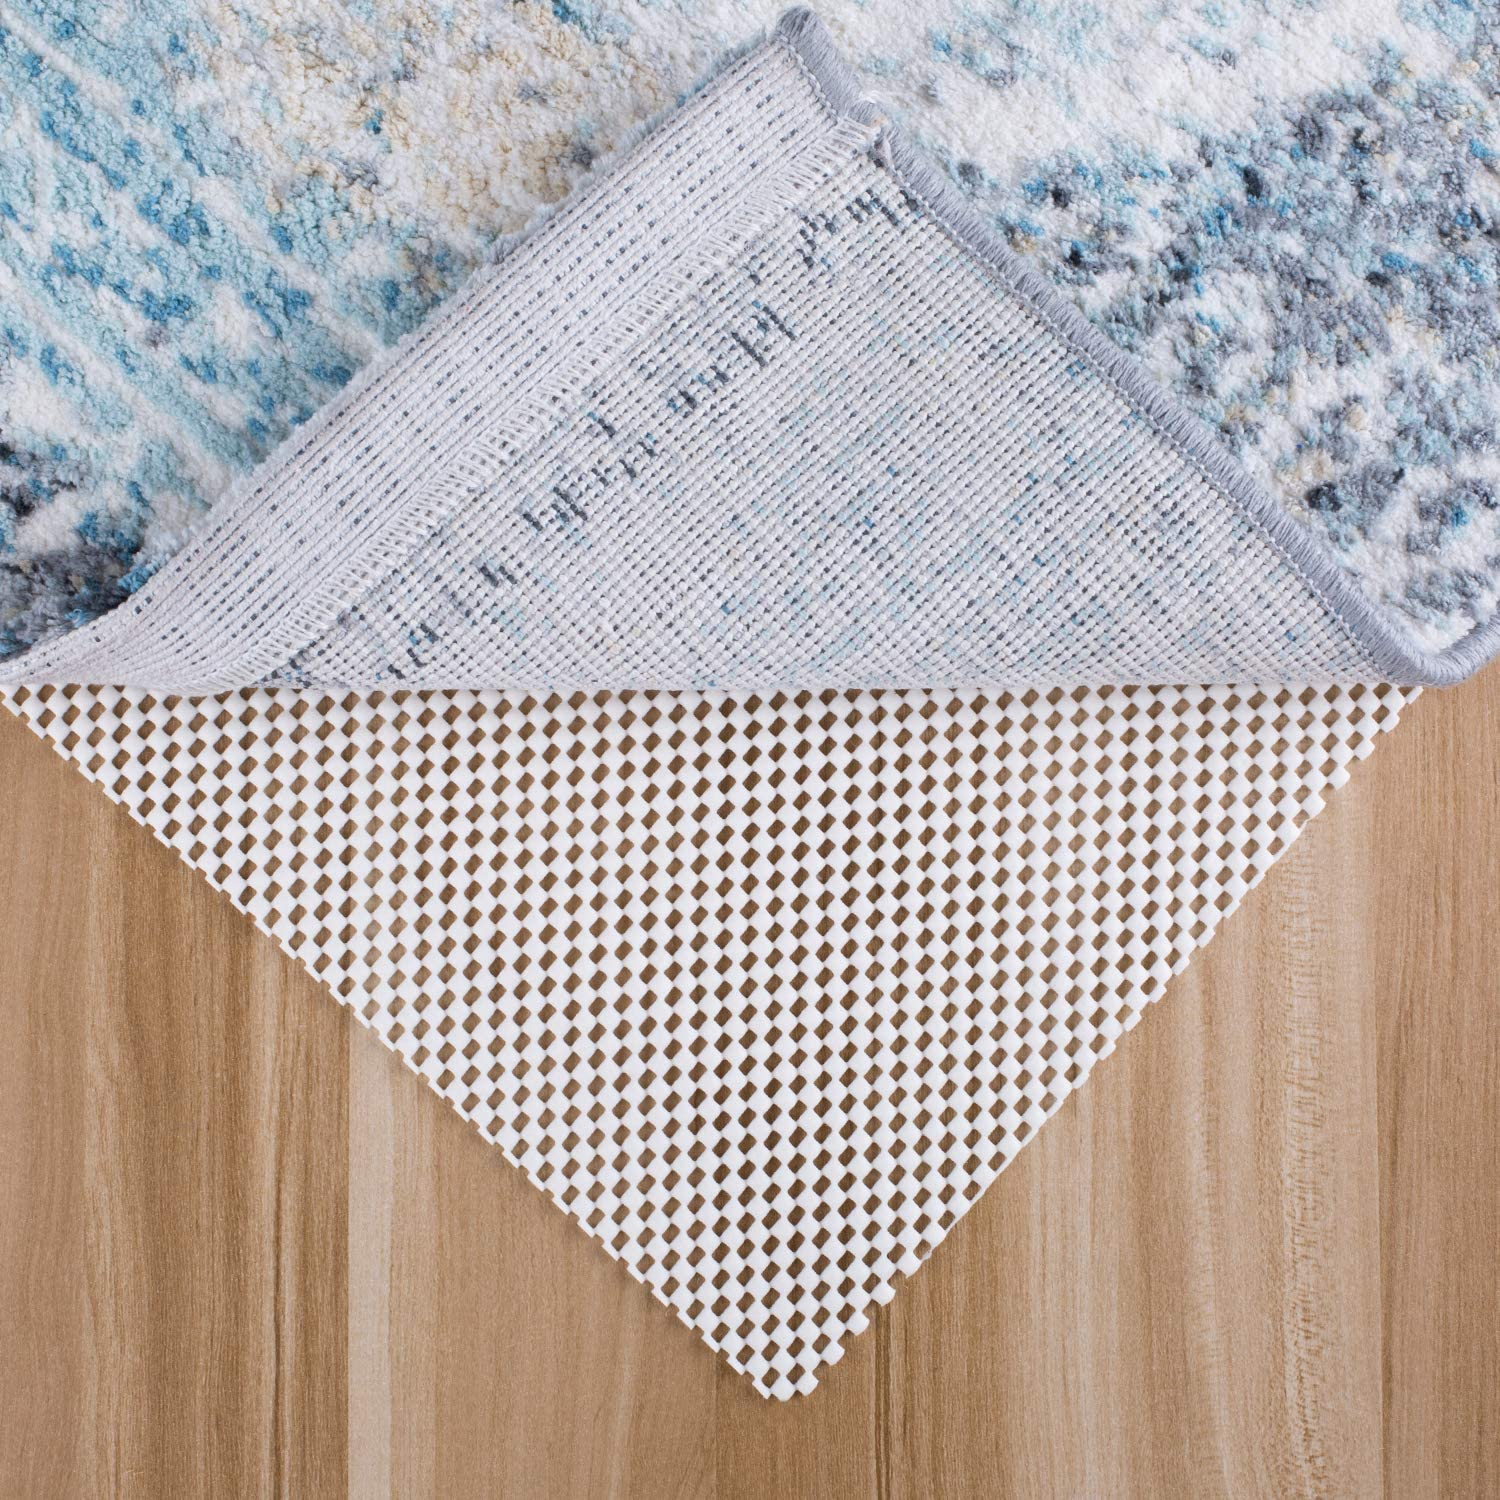 MAYSHINE Non-Slip Area Rug Pad Mat 5 x 7 Feet for All Floors and Finishes, Keeps Your Carpet Safe and in Place